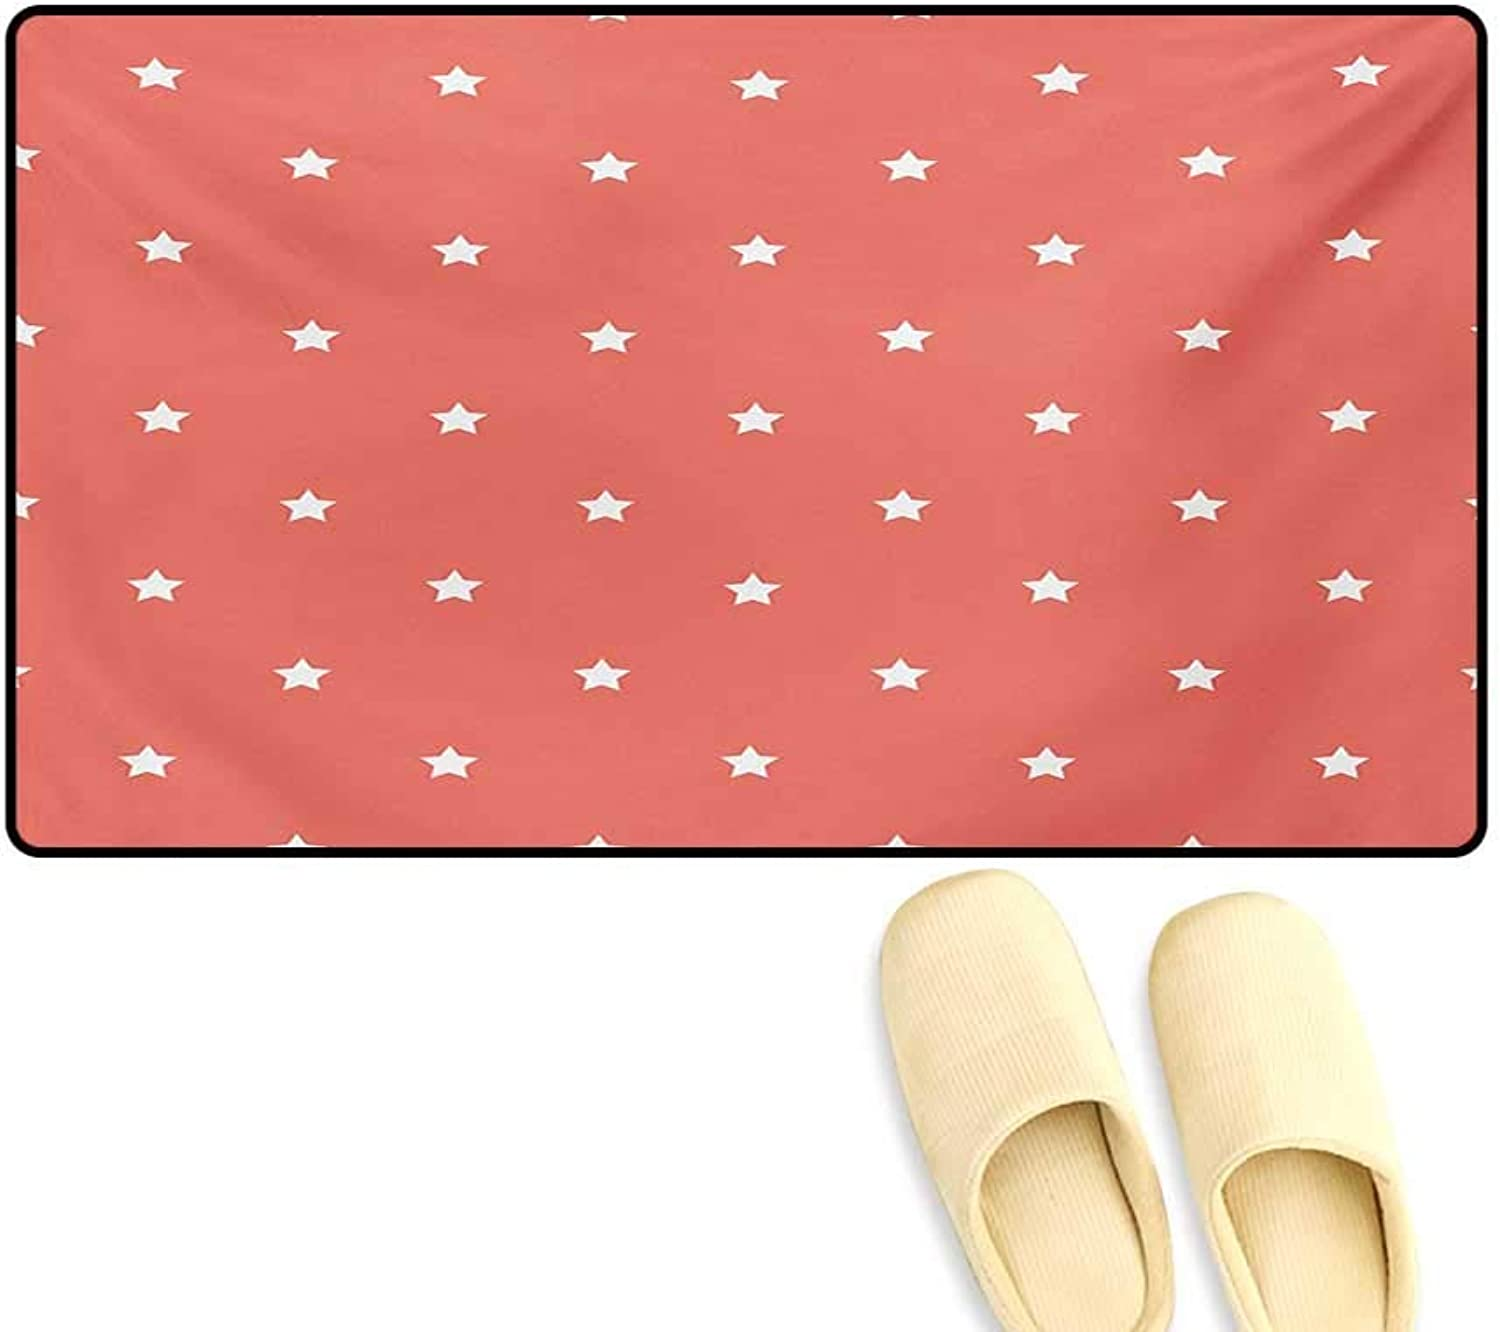 Door-mat,Minimalist Neat Star on Empty Outer Space Elements Themed Greeting Design Image,Bathroom Mat Tub Non Slip,Coral White,20 x32